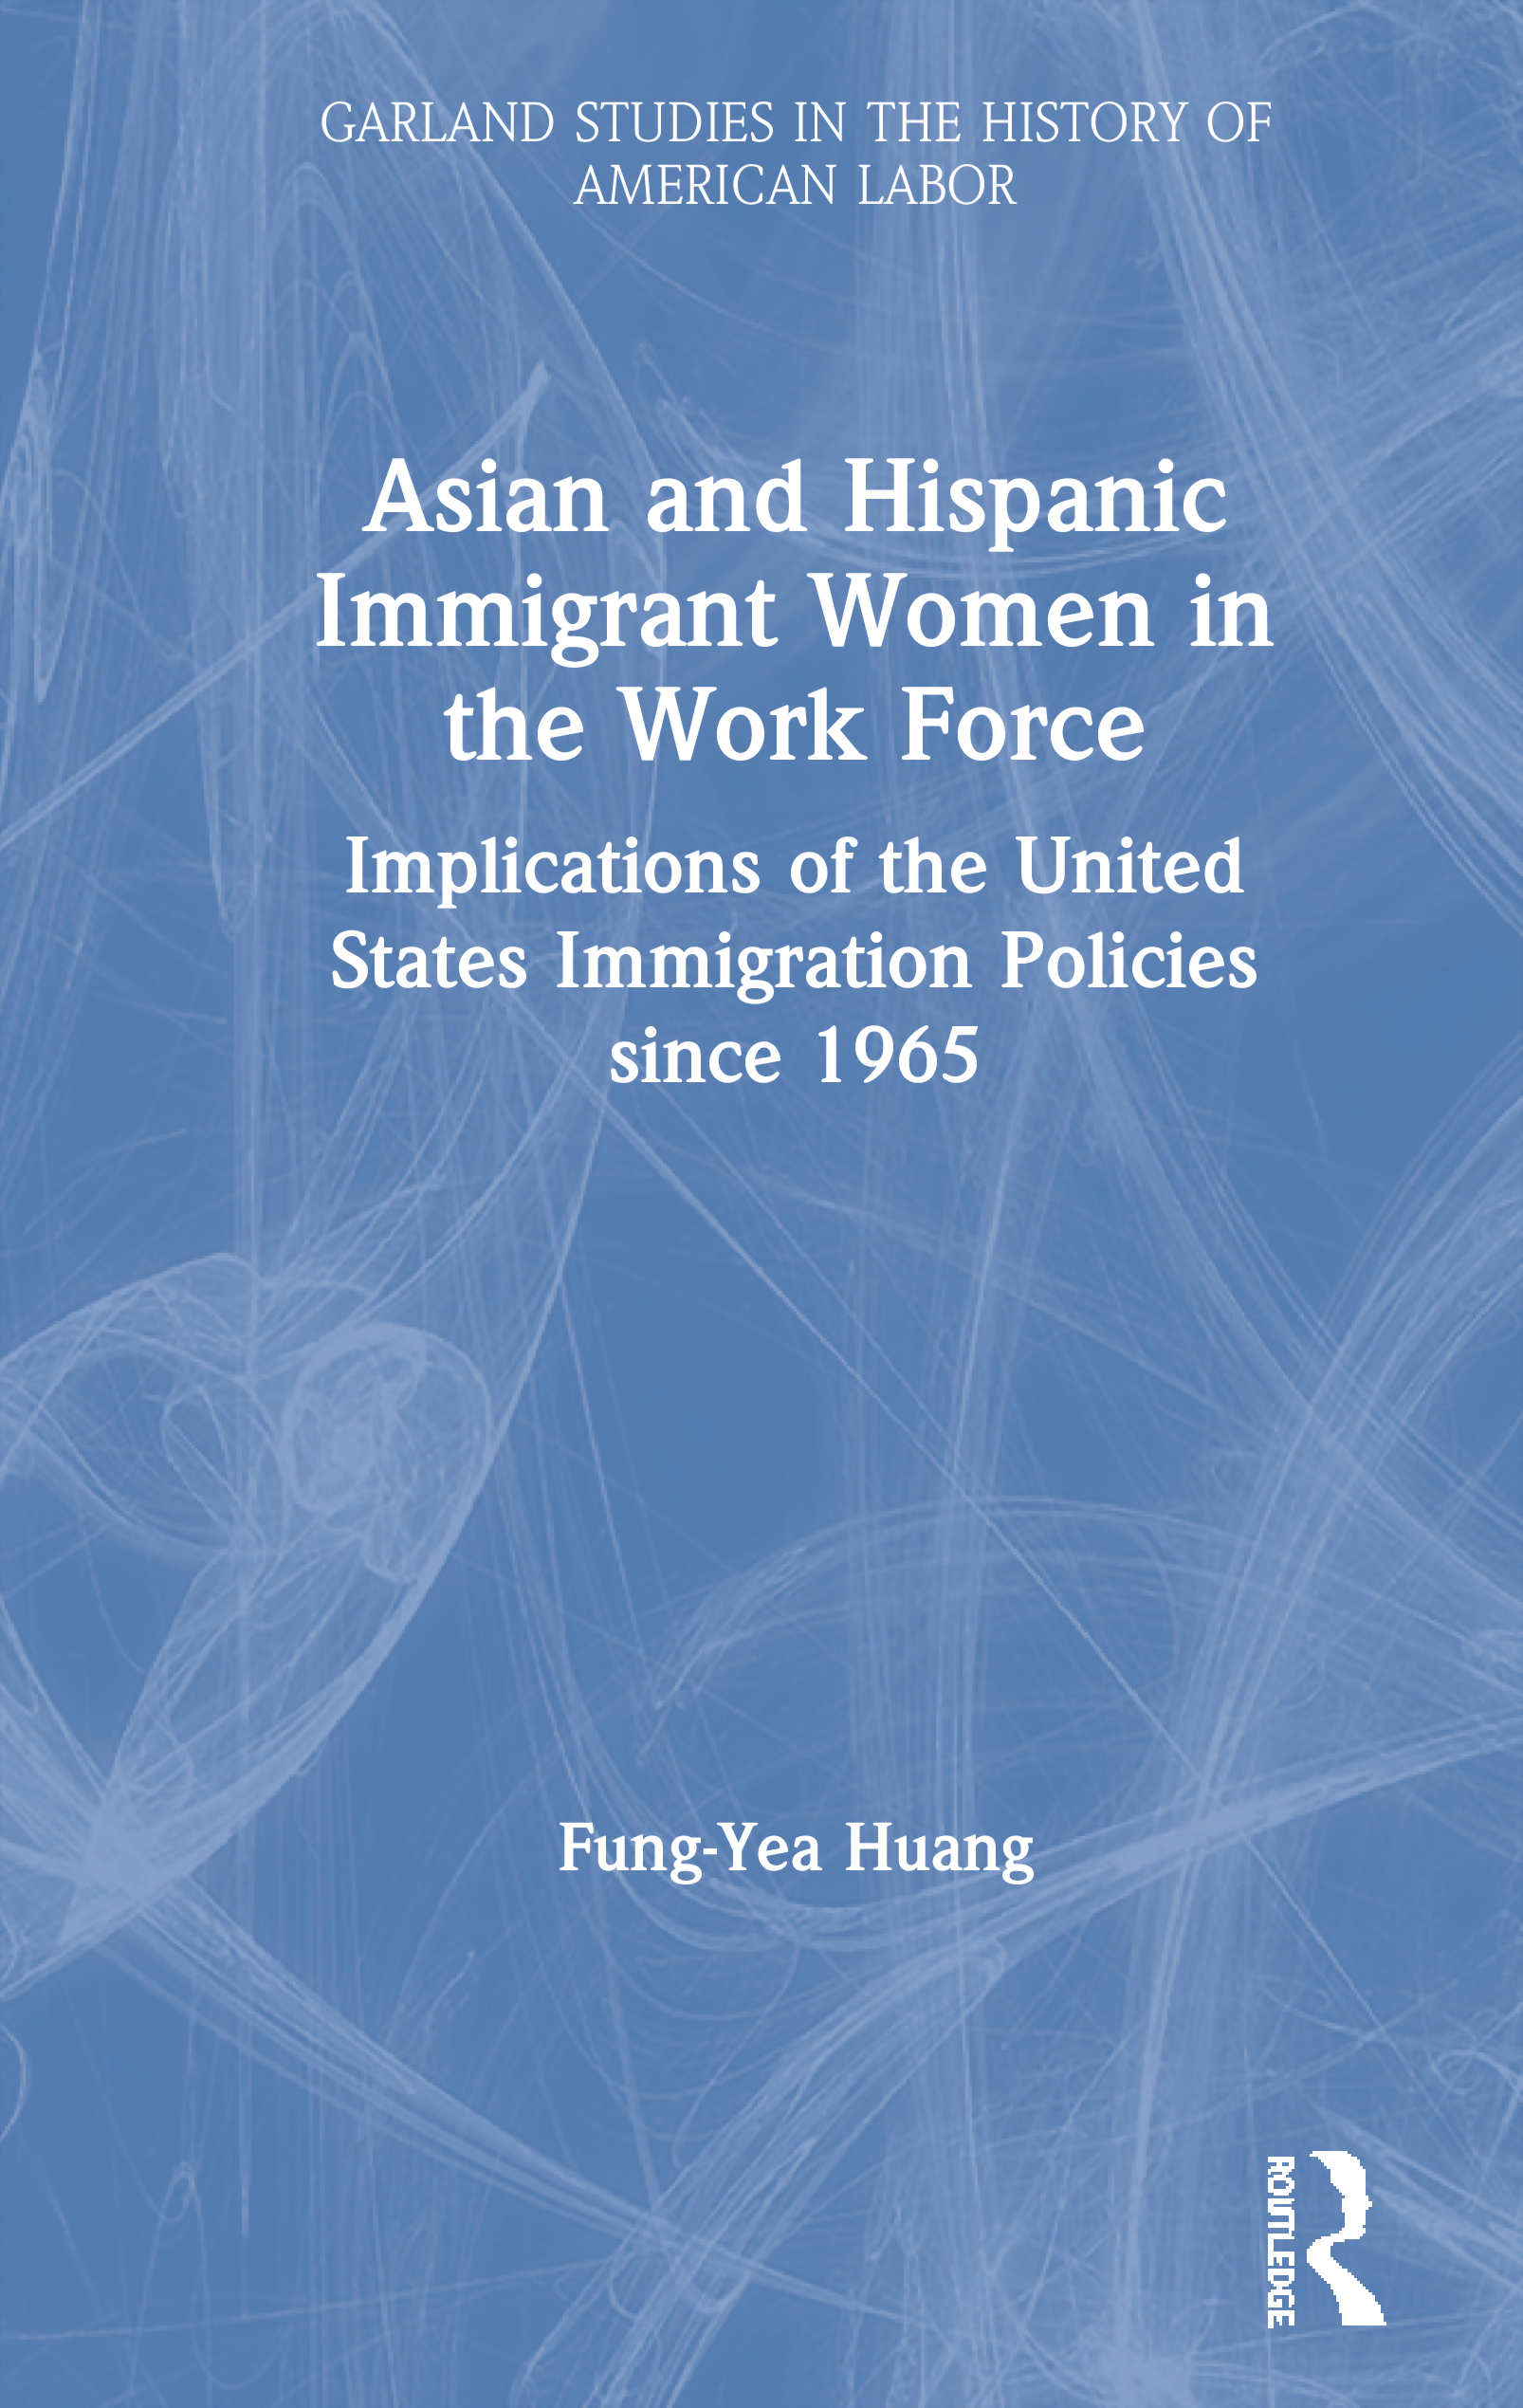 Asian and Hispanic Immigrant Women in the Work Force: Implications of the United States Immigration Policies since 1965 book cover